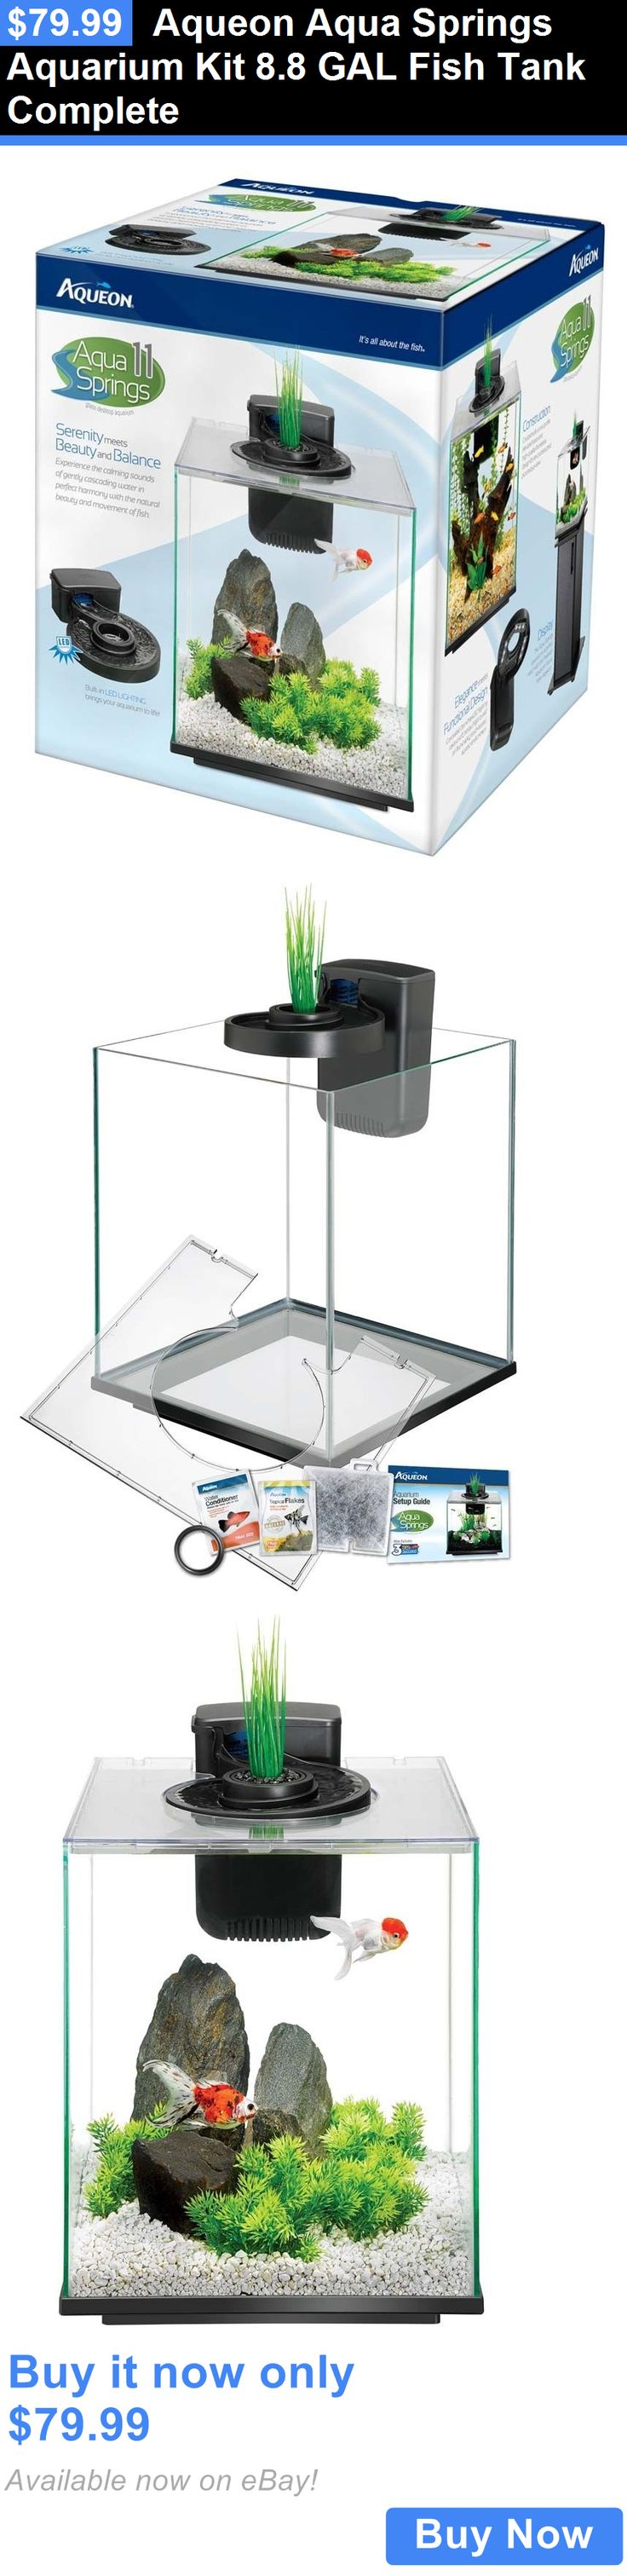 Aquarium fish tank complete system - Animals Fish And Aquariums Aqueon Aqua Springs Aquarium Kit 8 8 Gal Fish Tank Complete Buy It Now Only 79 99 Animals Fish And Aquariums Pinterest